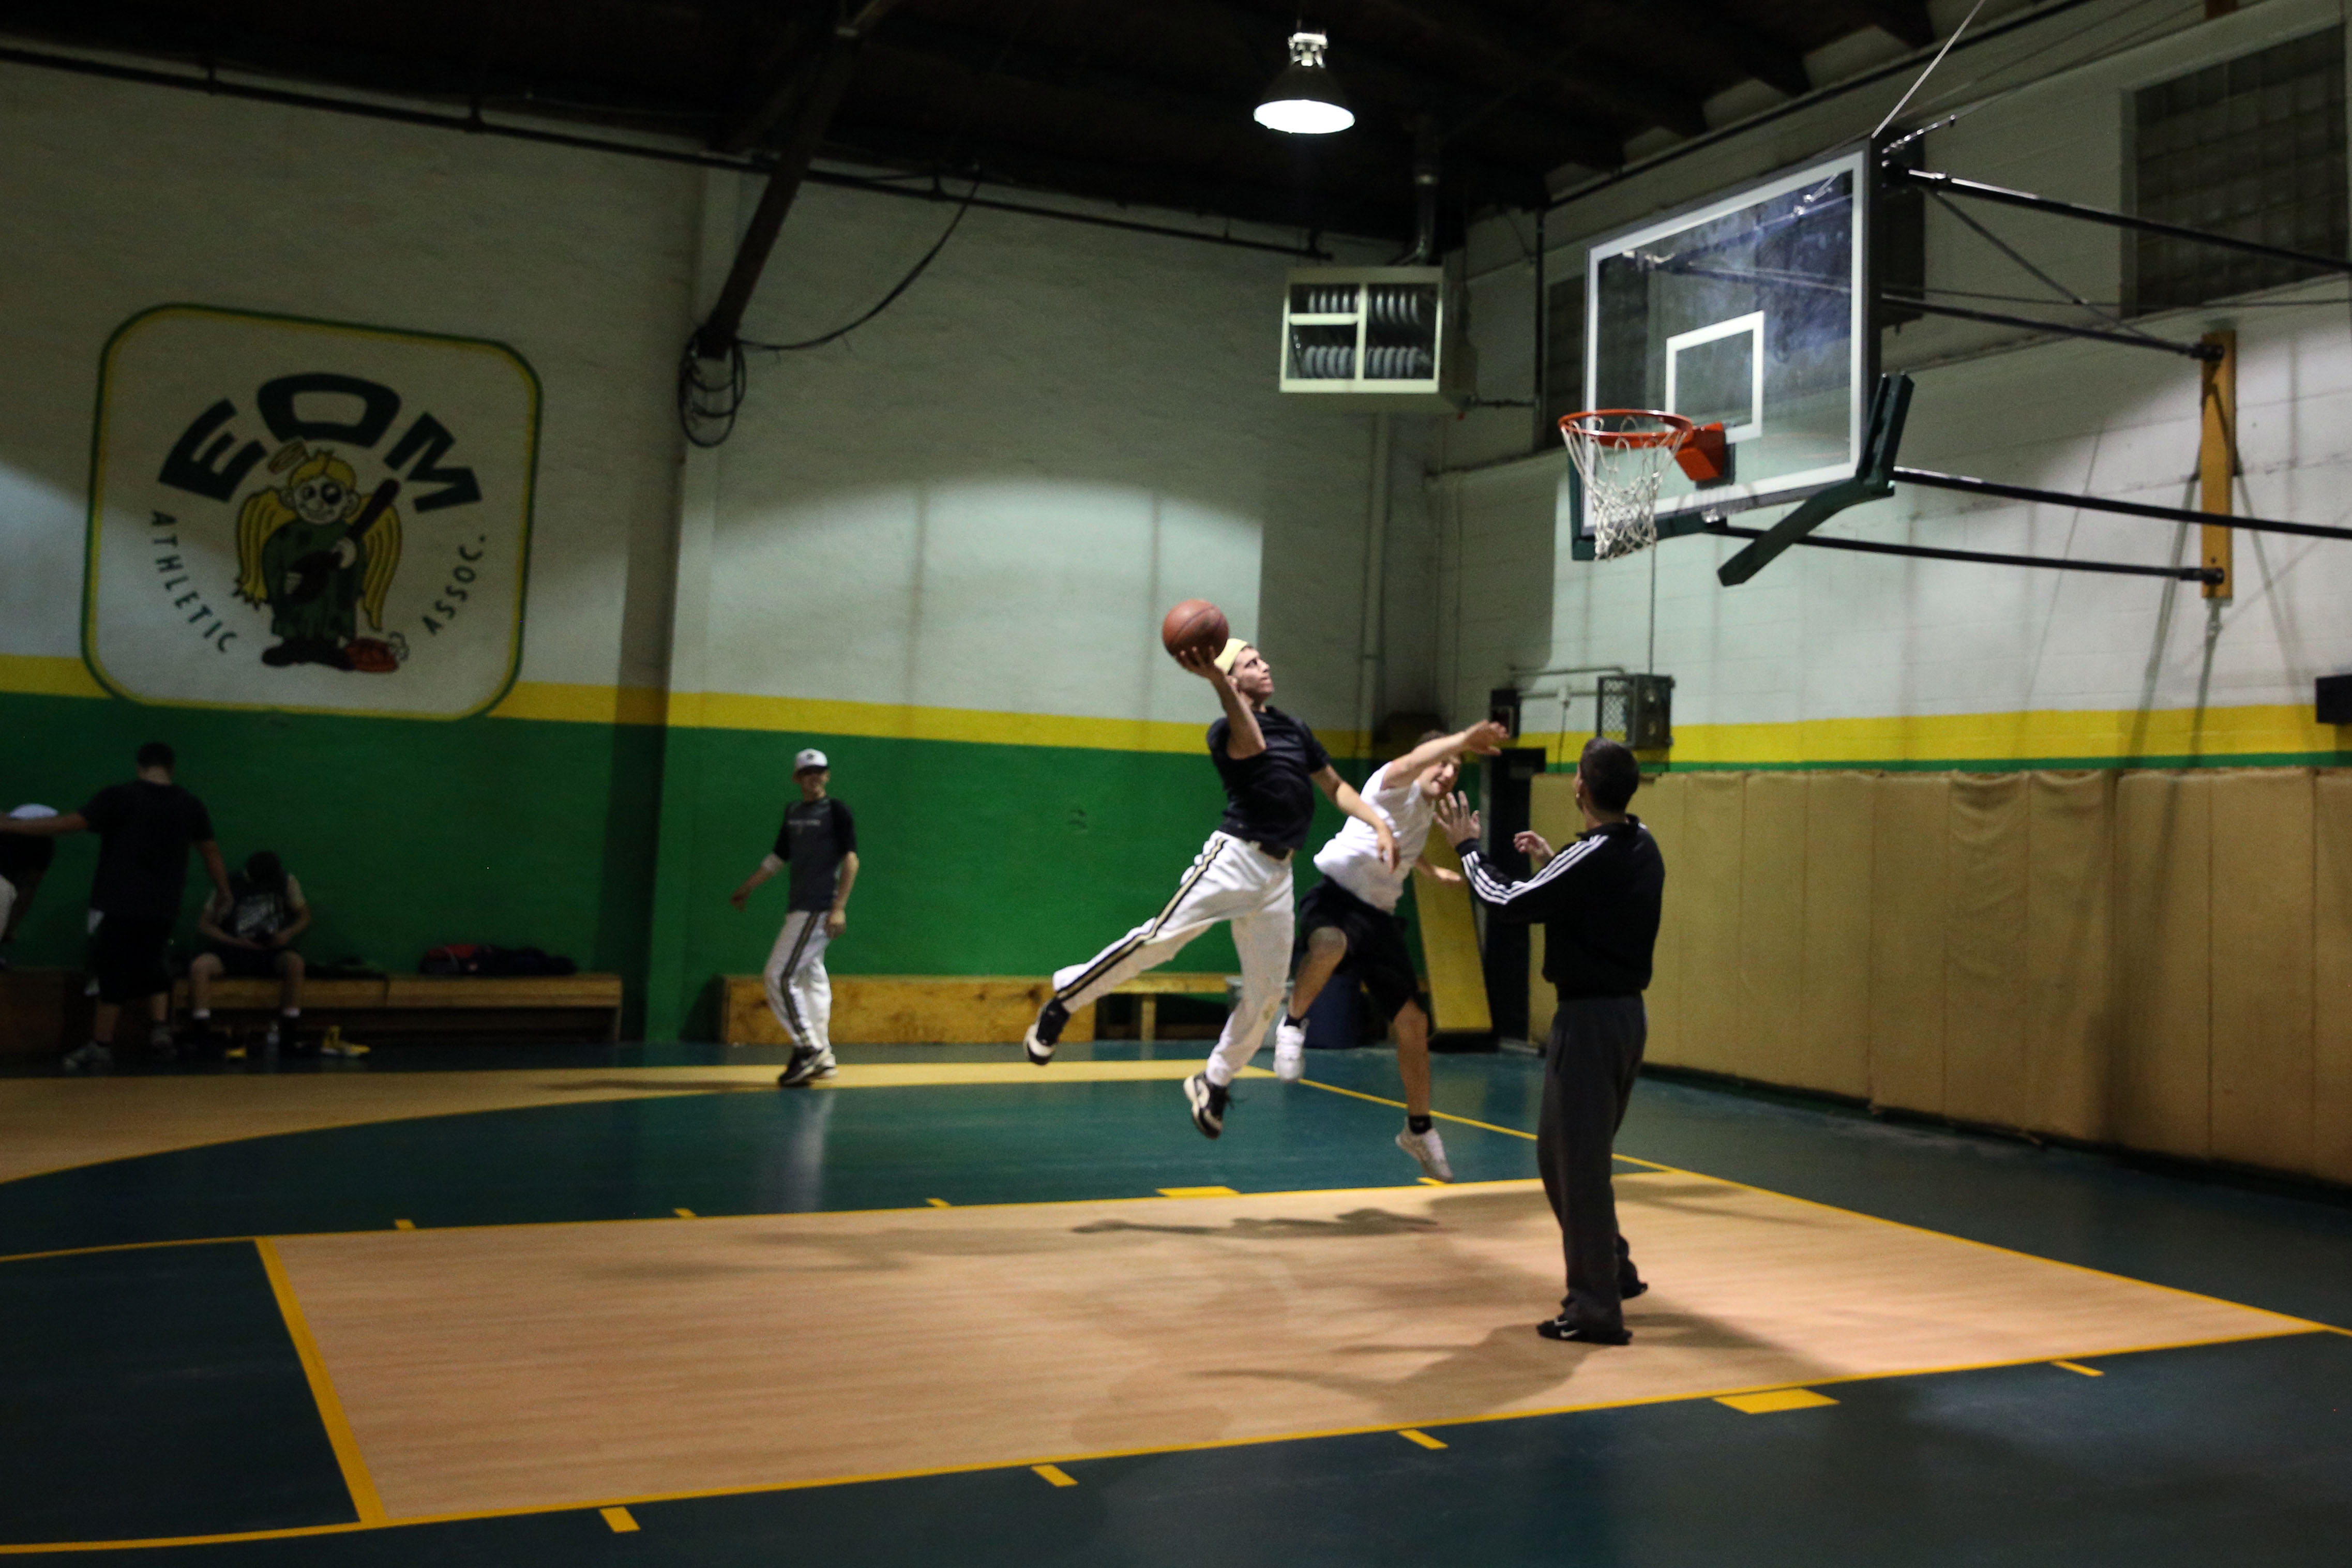 A young men's league plays basketball in the gym